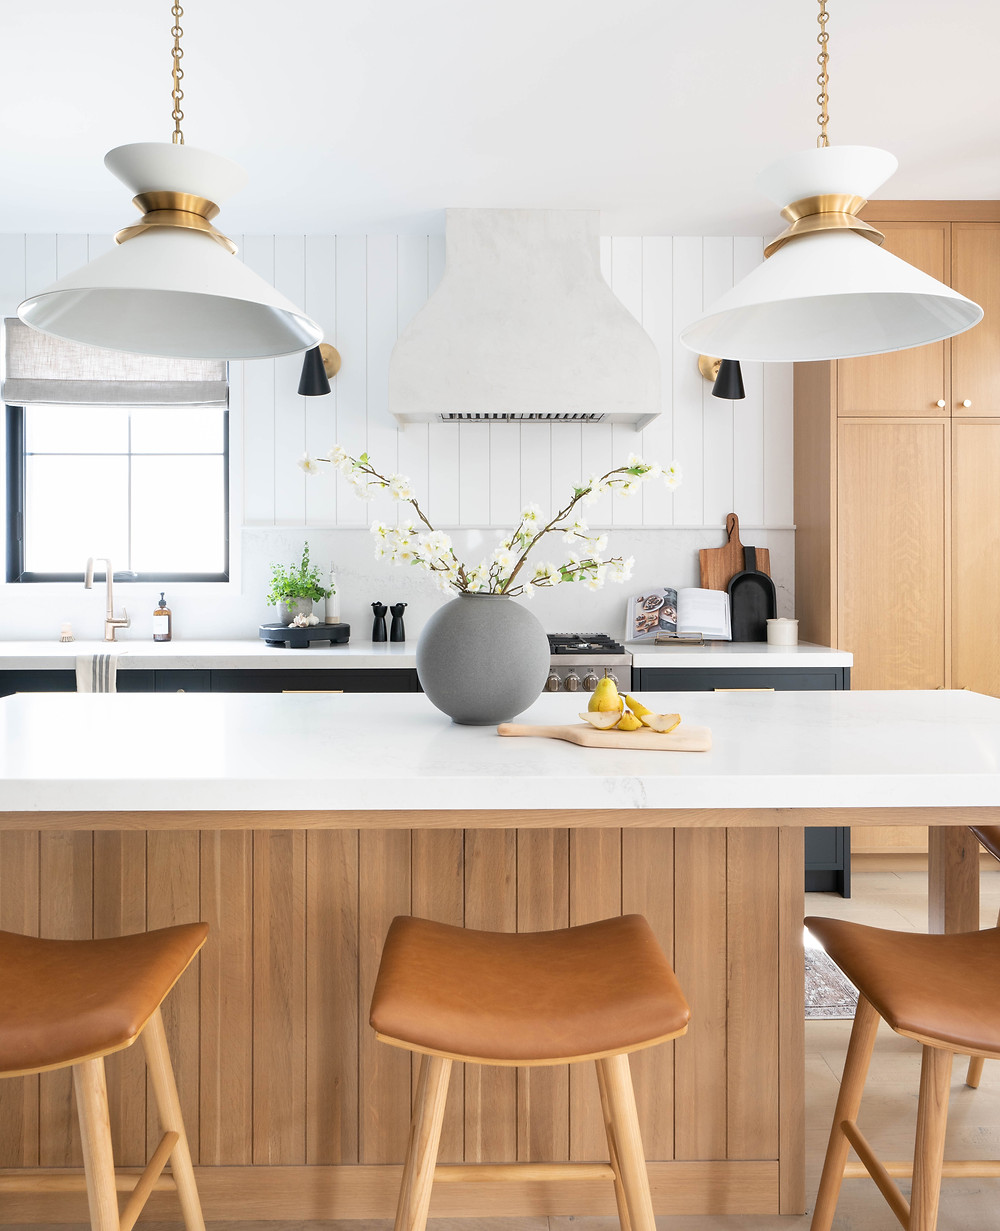 The custom range hood brings a soft yet substantial touch to the kitchen's back wall. Once an almost bare space, this wall now houses the plaster finished piece which is flanked by modern sconces for additional task lighting and ambiance.